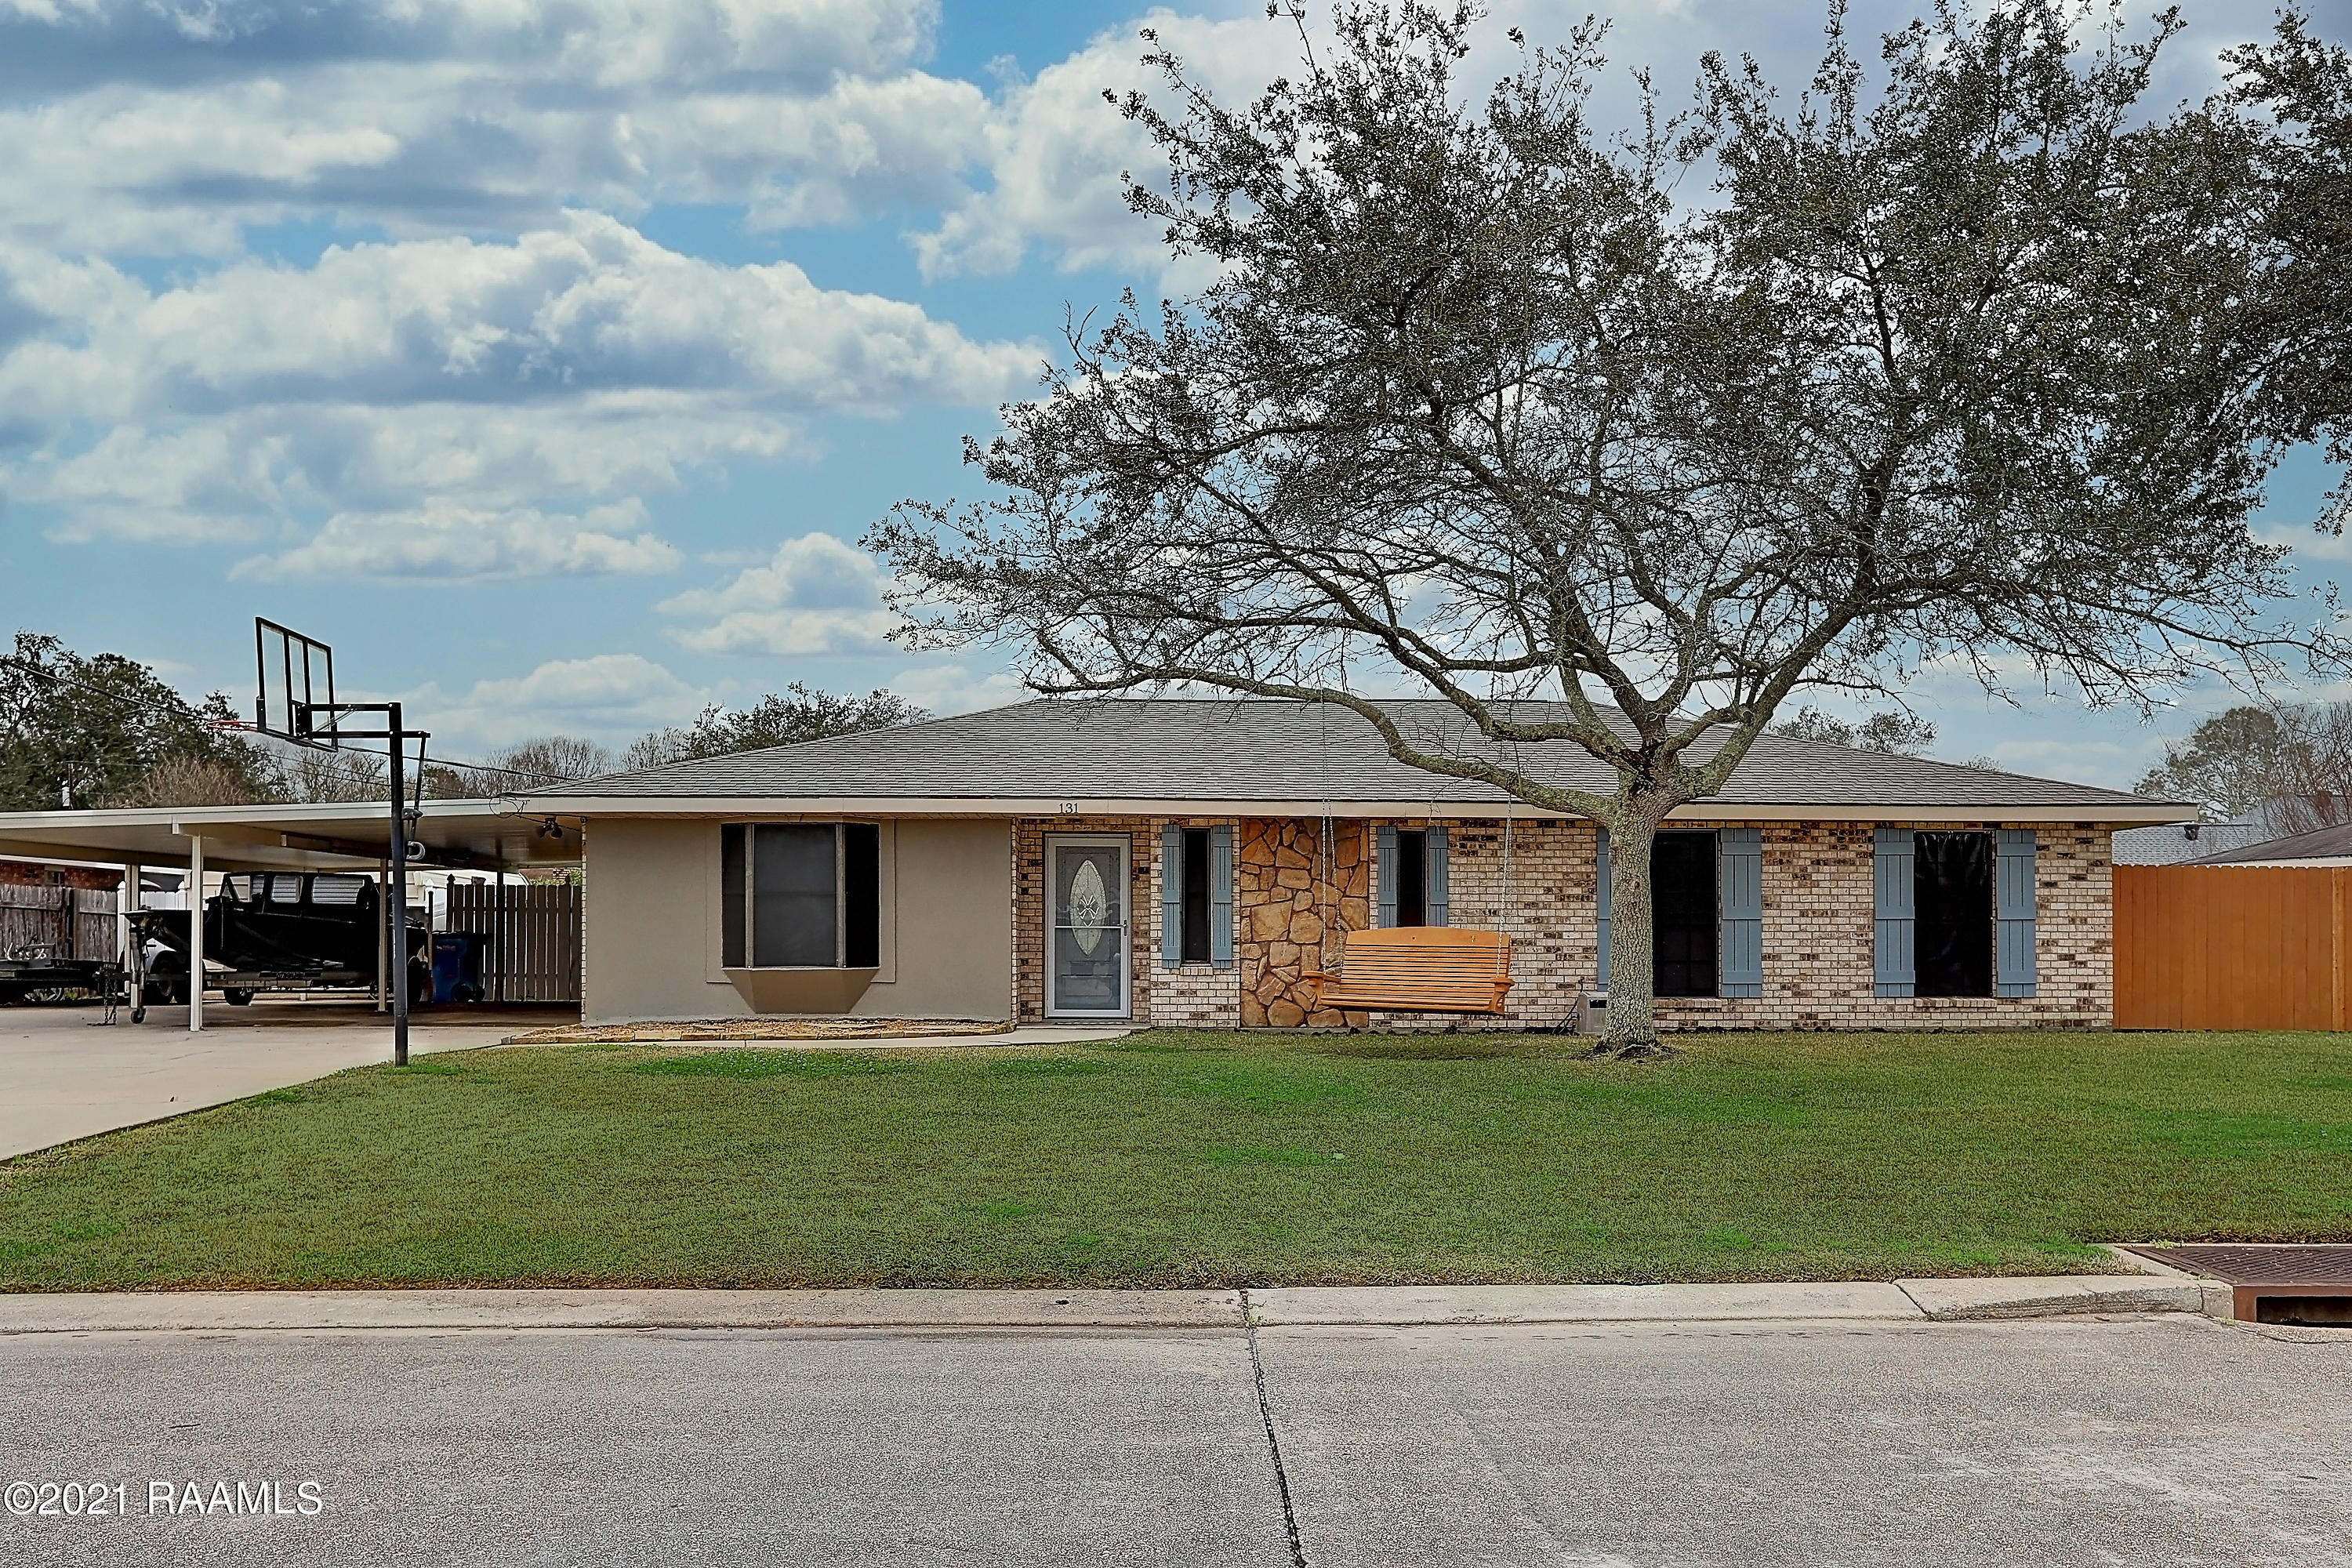 131 Becky Drive, Patterson, LA 70392 Photo #2